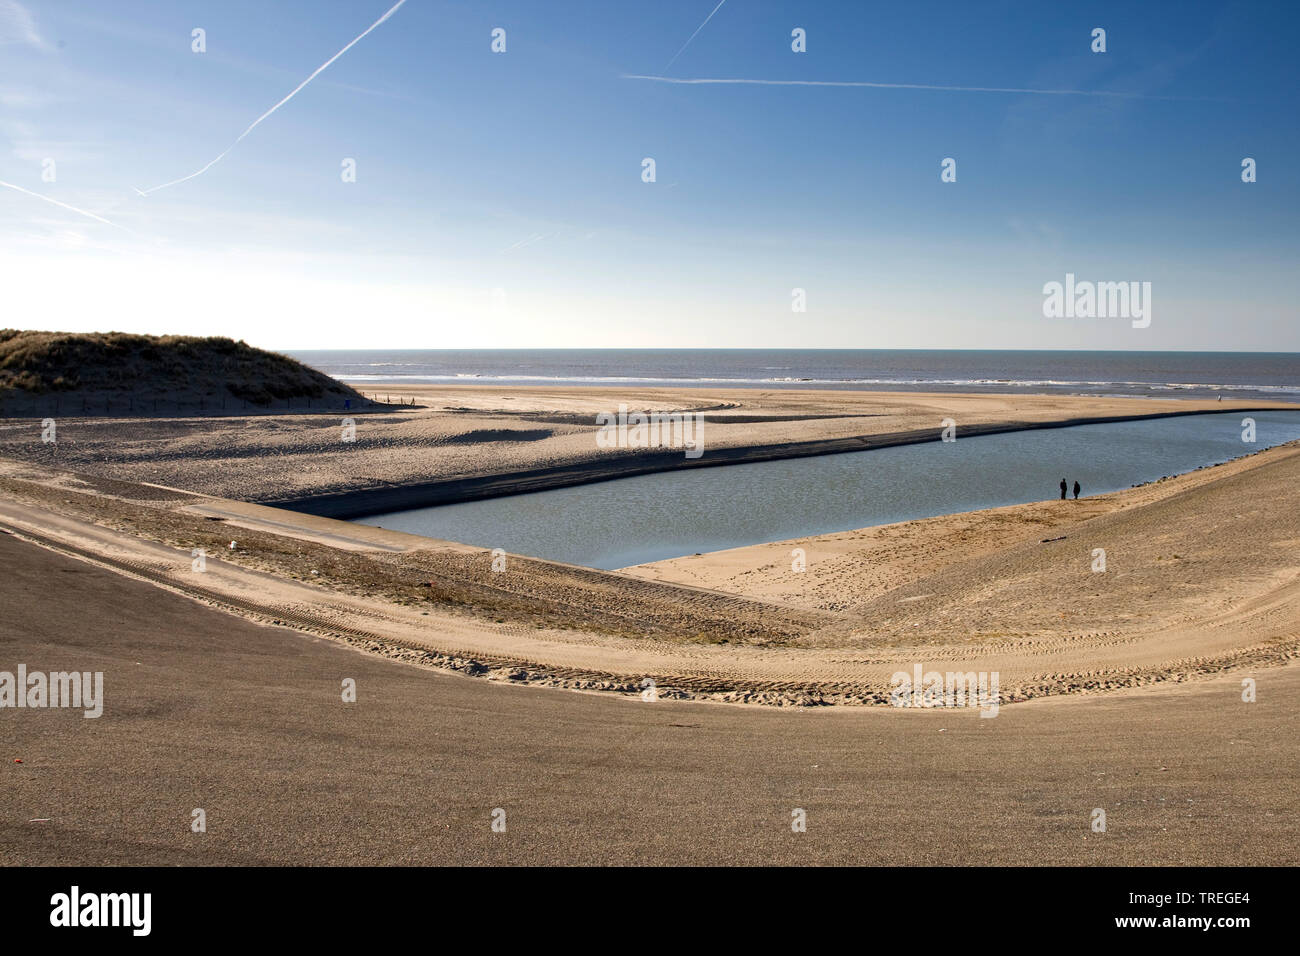 Buitenwatering, Entwaesserung in die Nordsee, Niederlande, Katwijk | Buitenwatering, drainage canal into the North Sea, Netherlands, Katwijk | BLWS526 - Stock Image